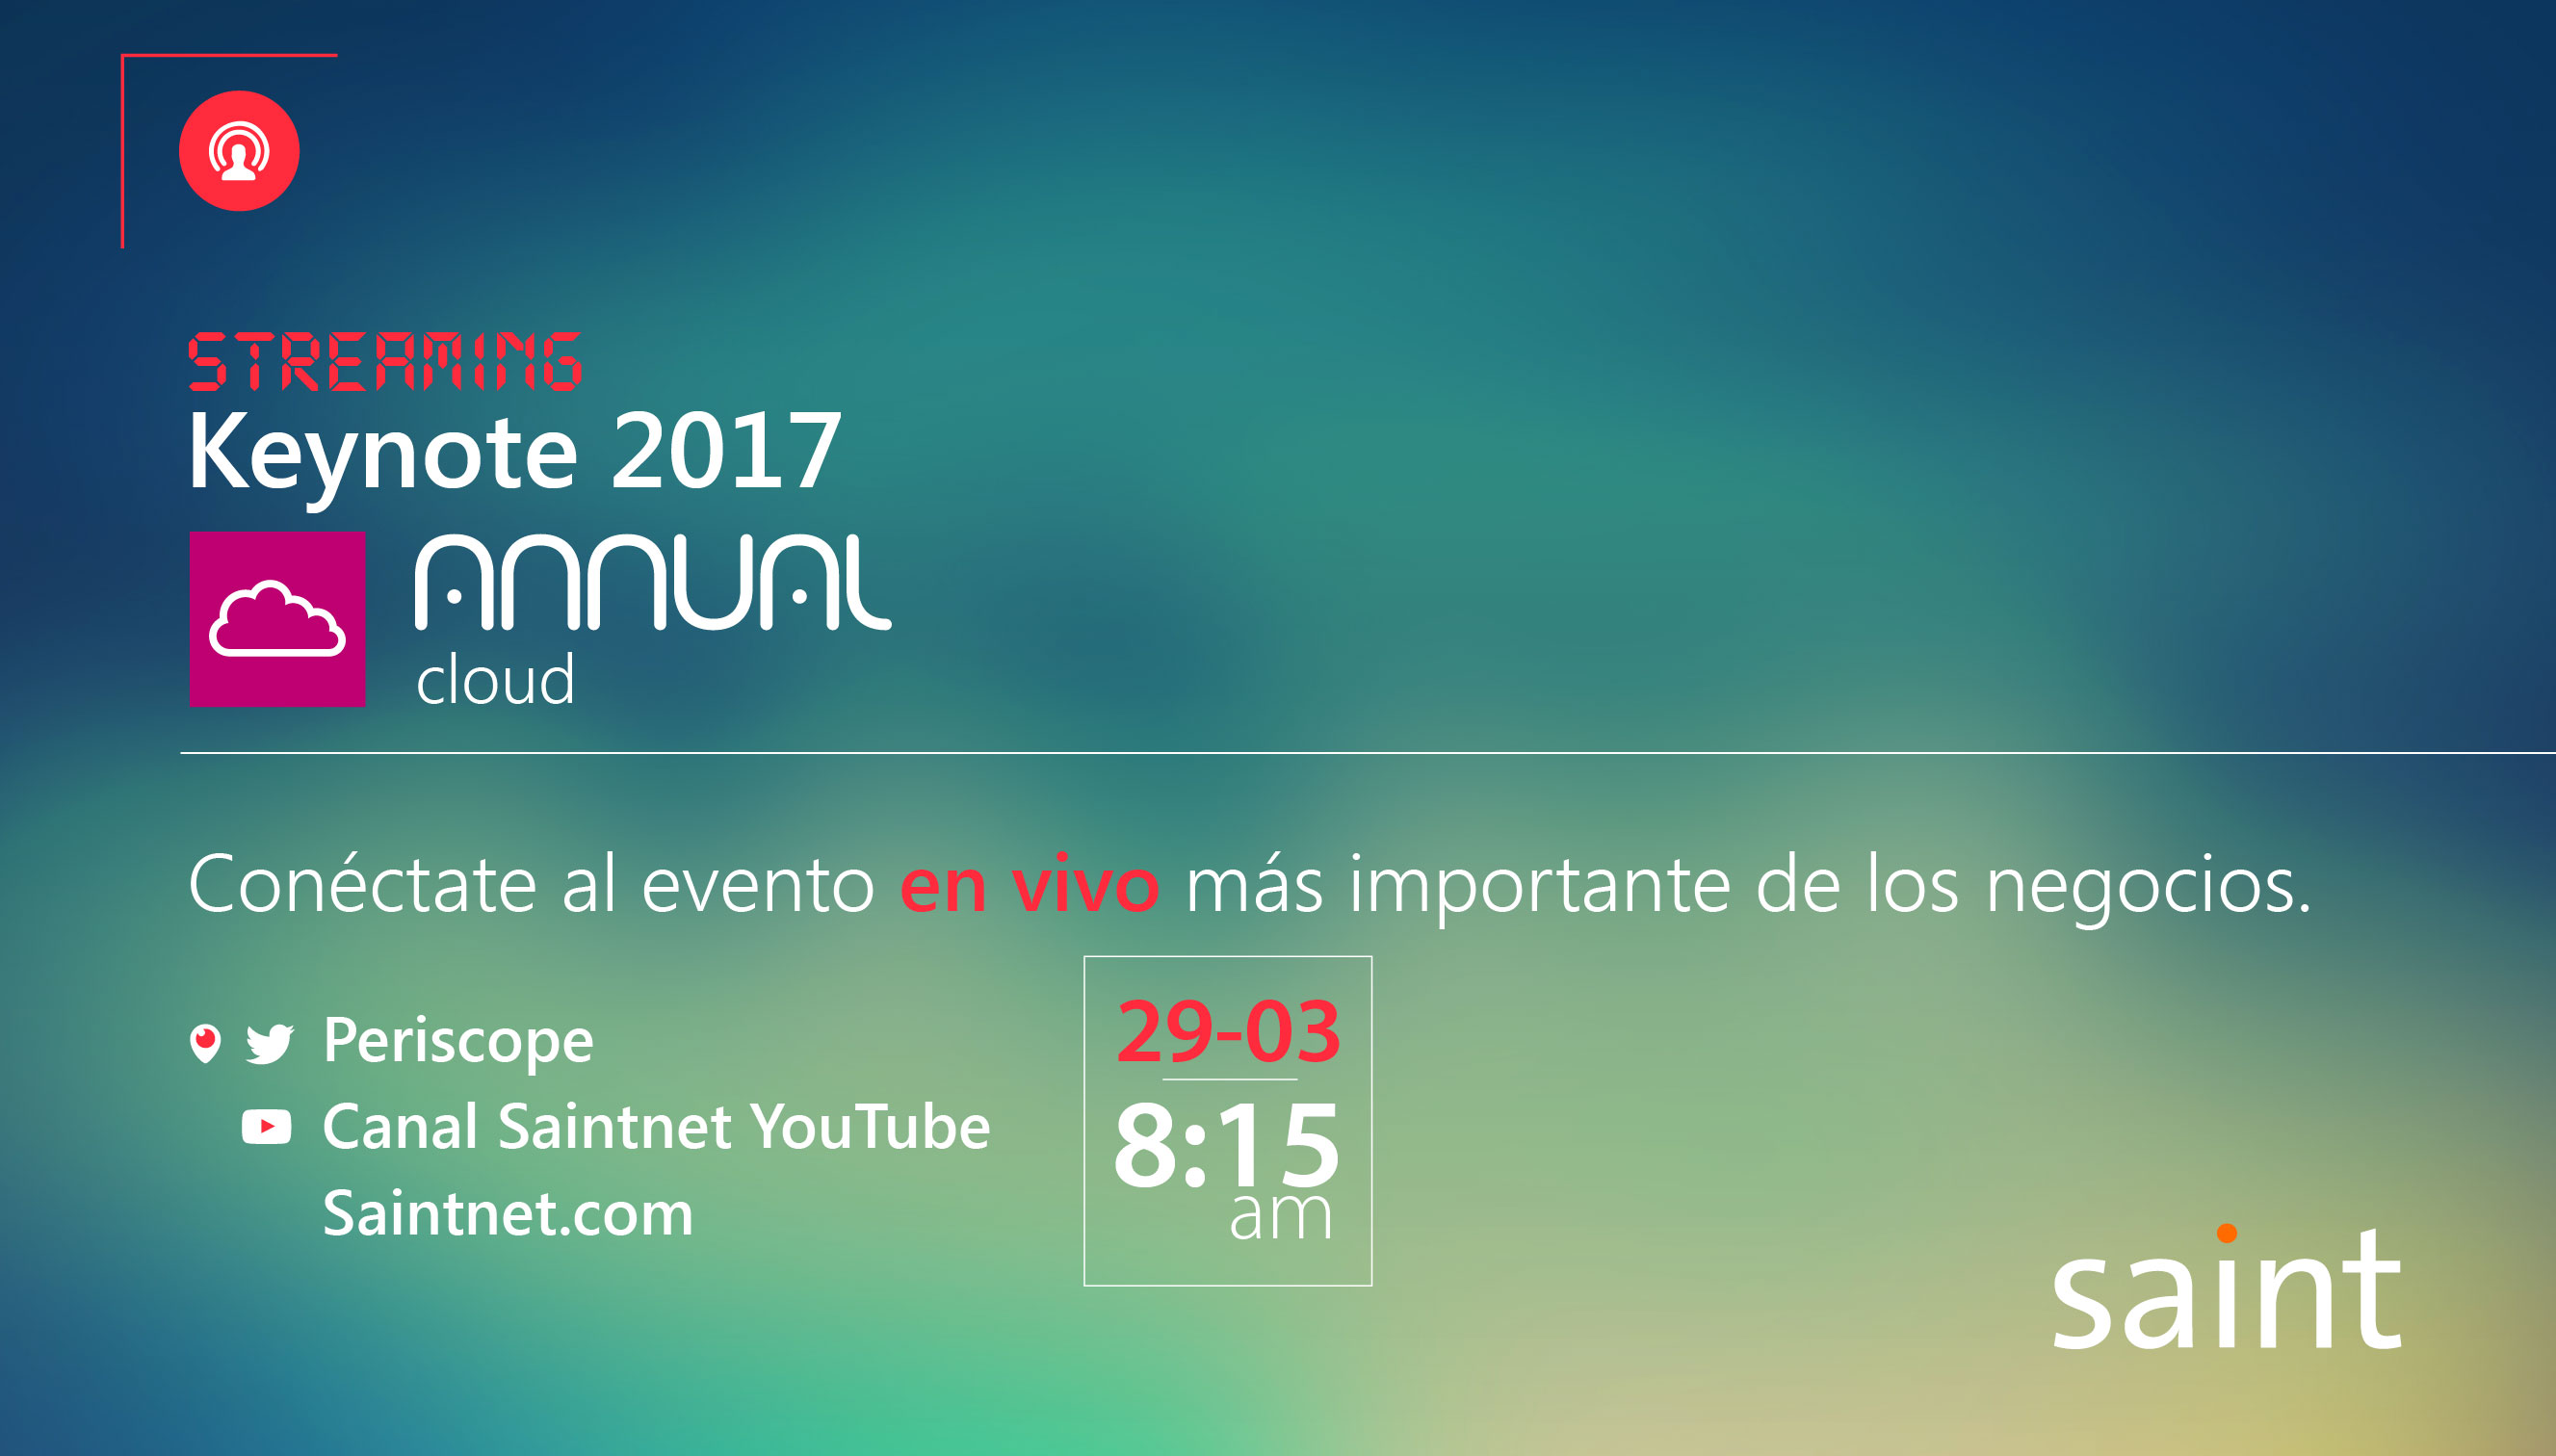 Streaming keynote 2017 Annual Cloud